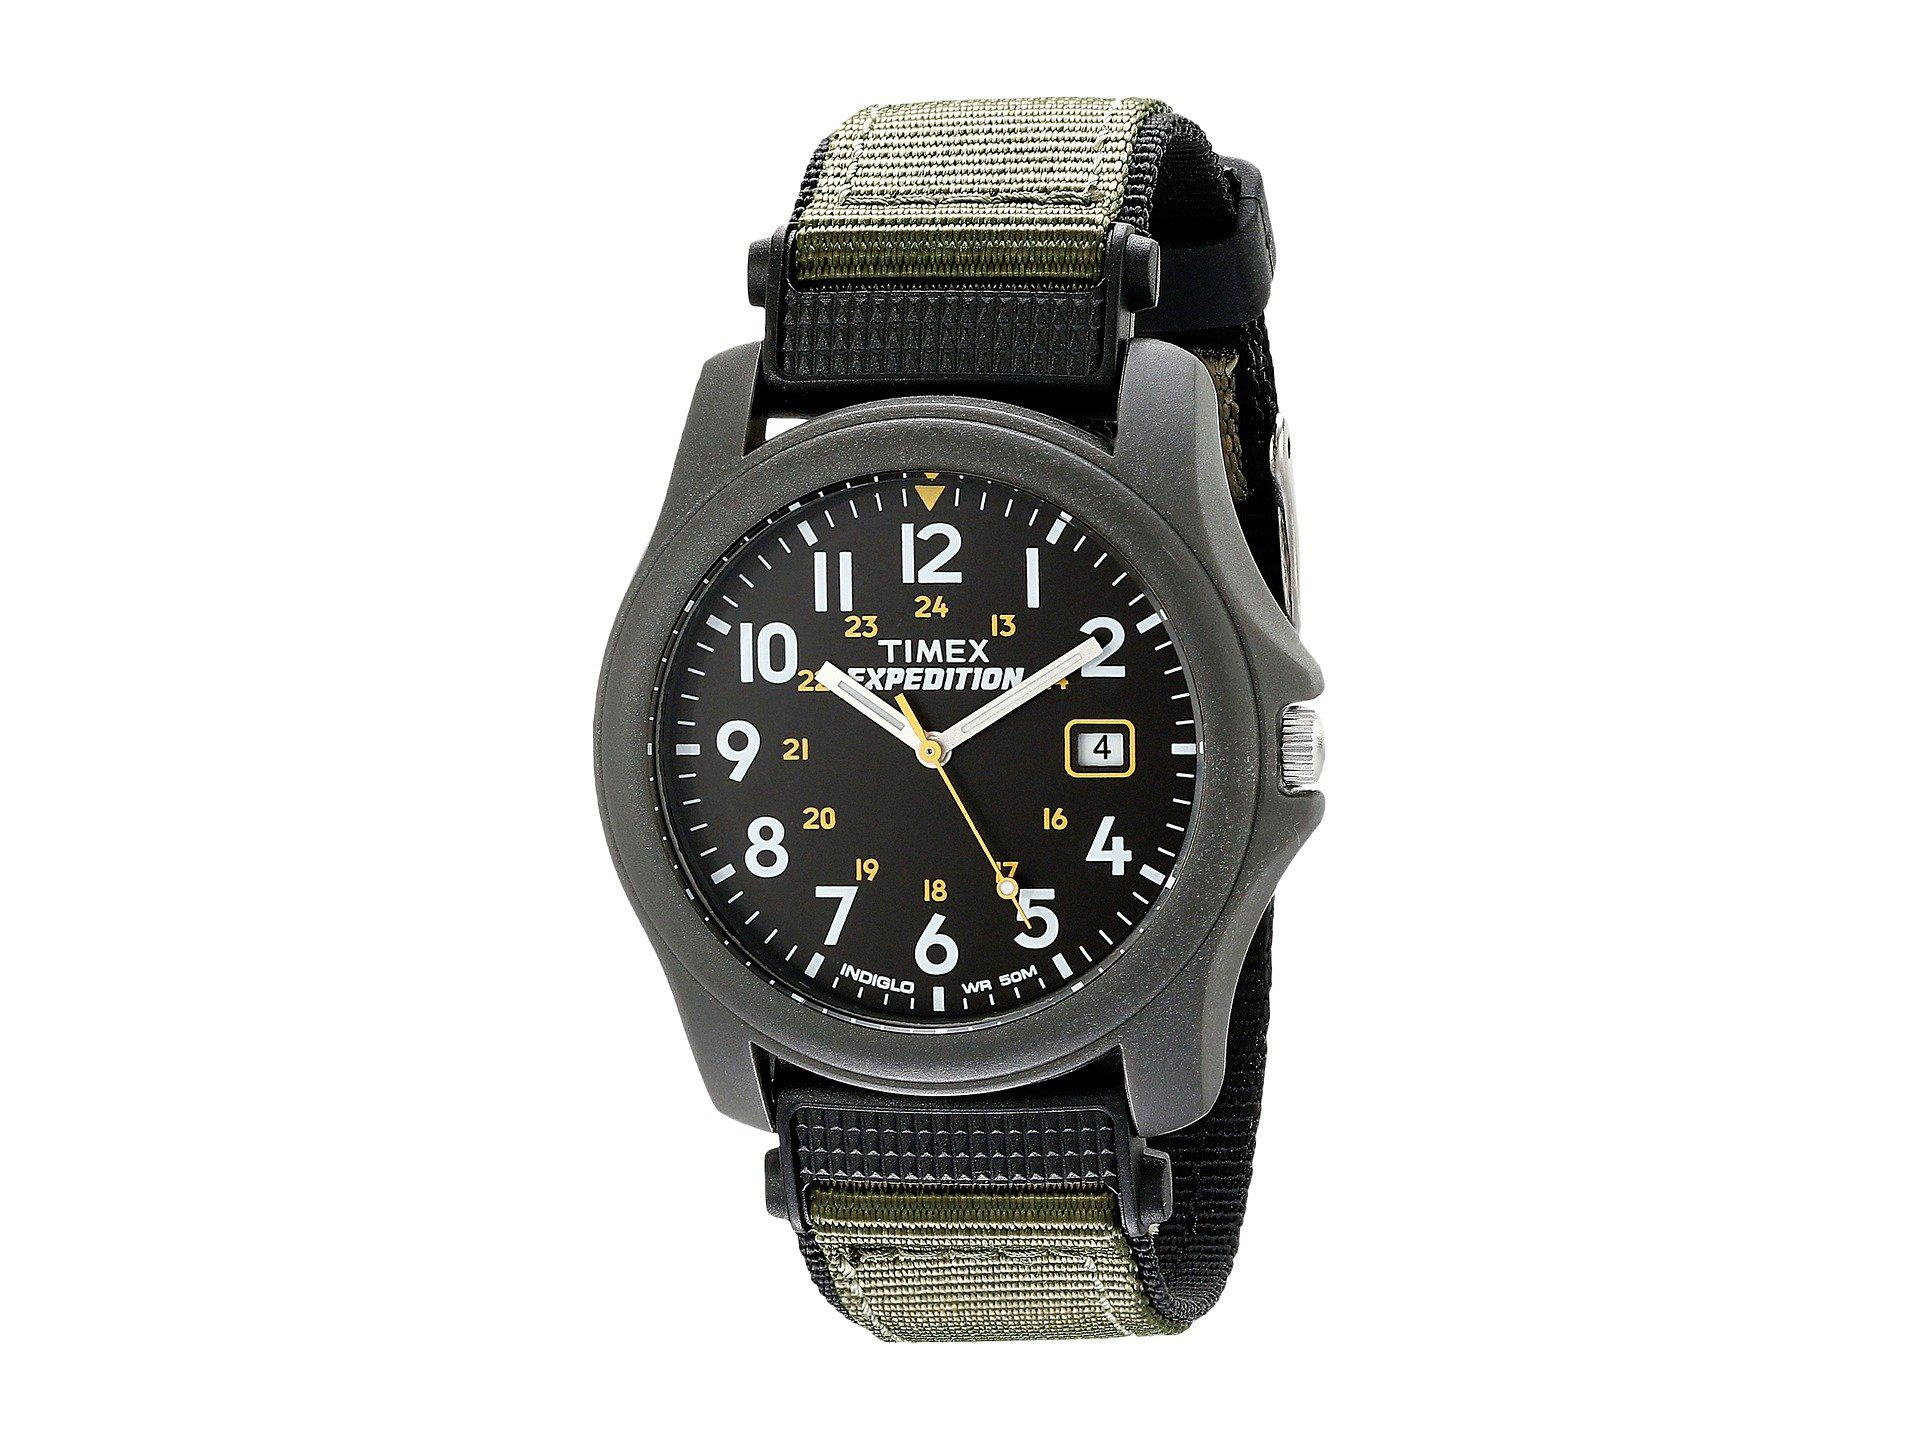 Lyst Timex Camper Expedition 174 Classic Analog Watch In